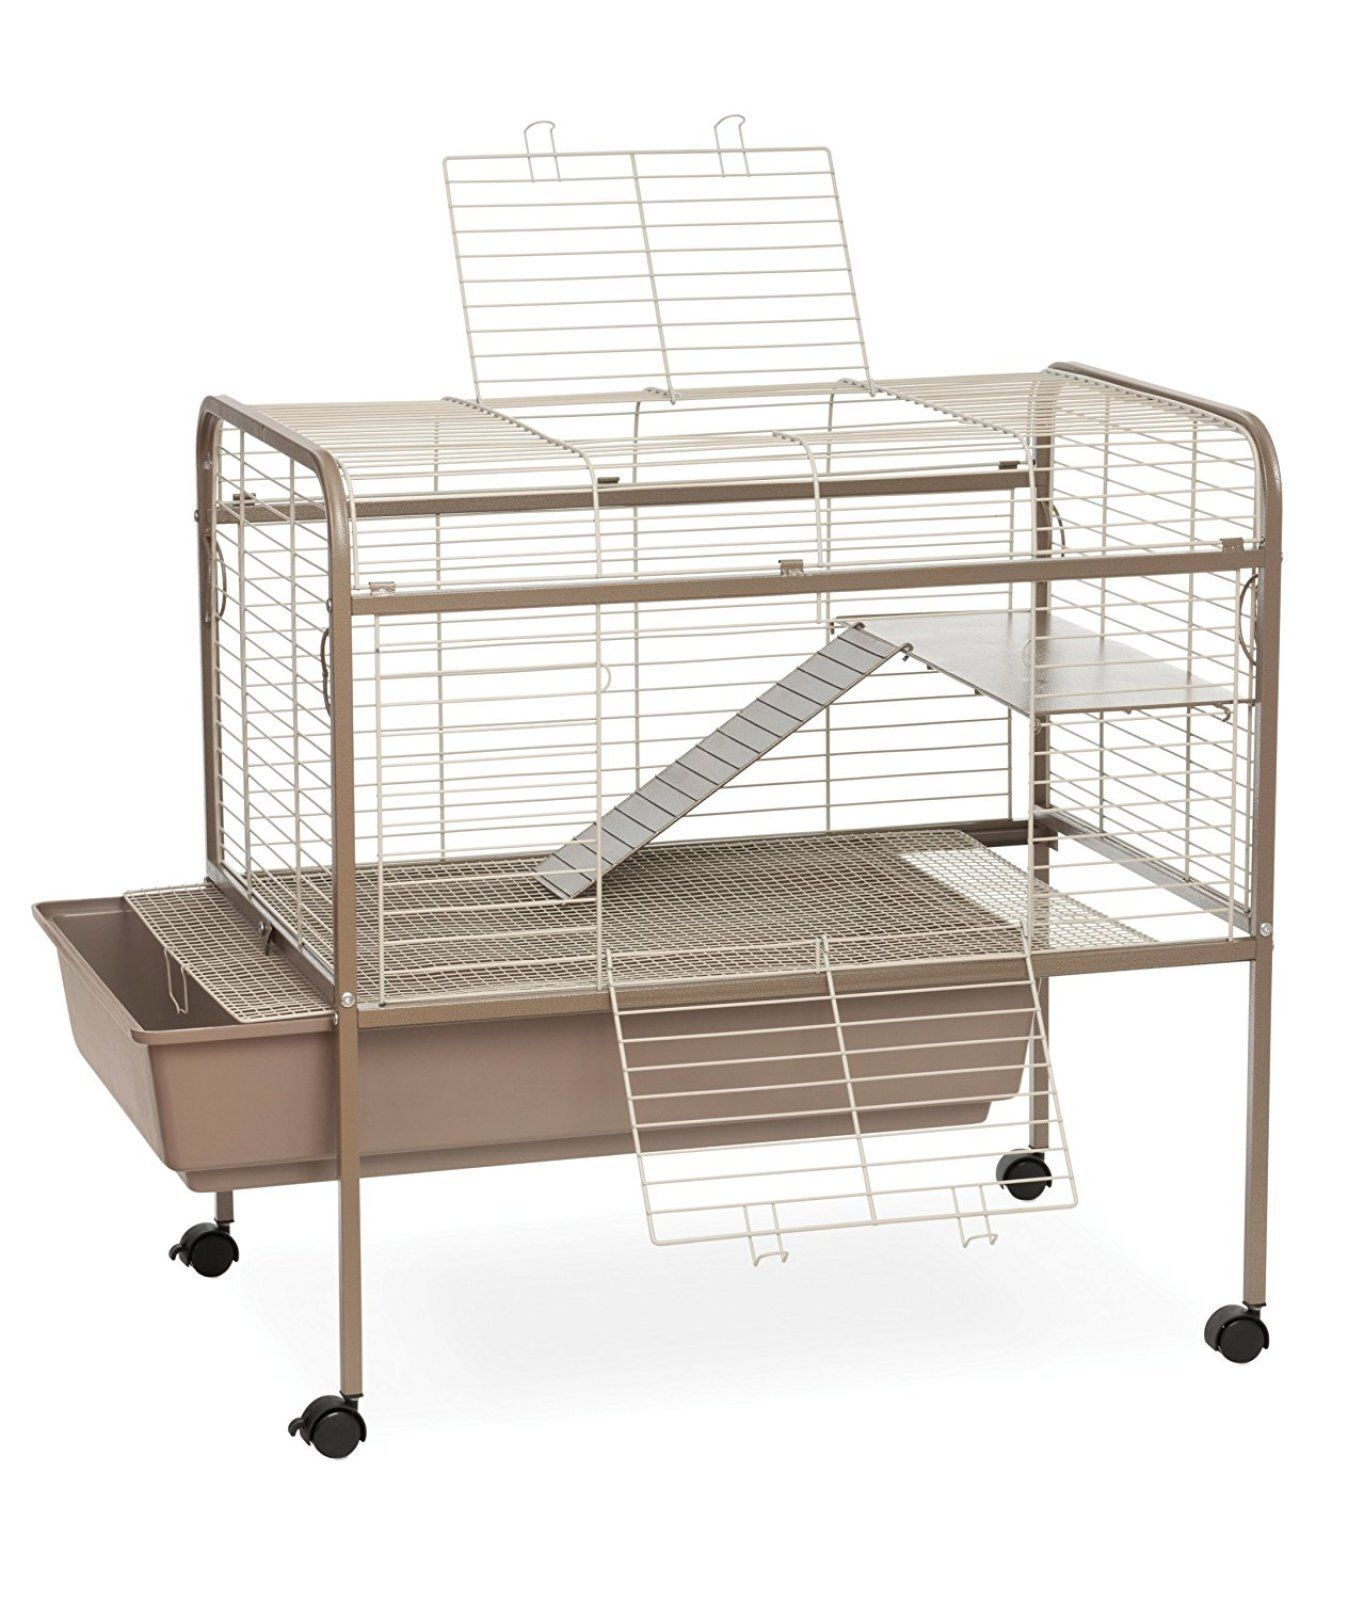 Prevue Pet Products Spv425 Small Animal Cage on Stand With Casters ...